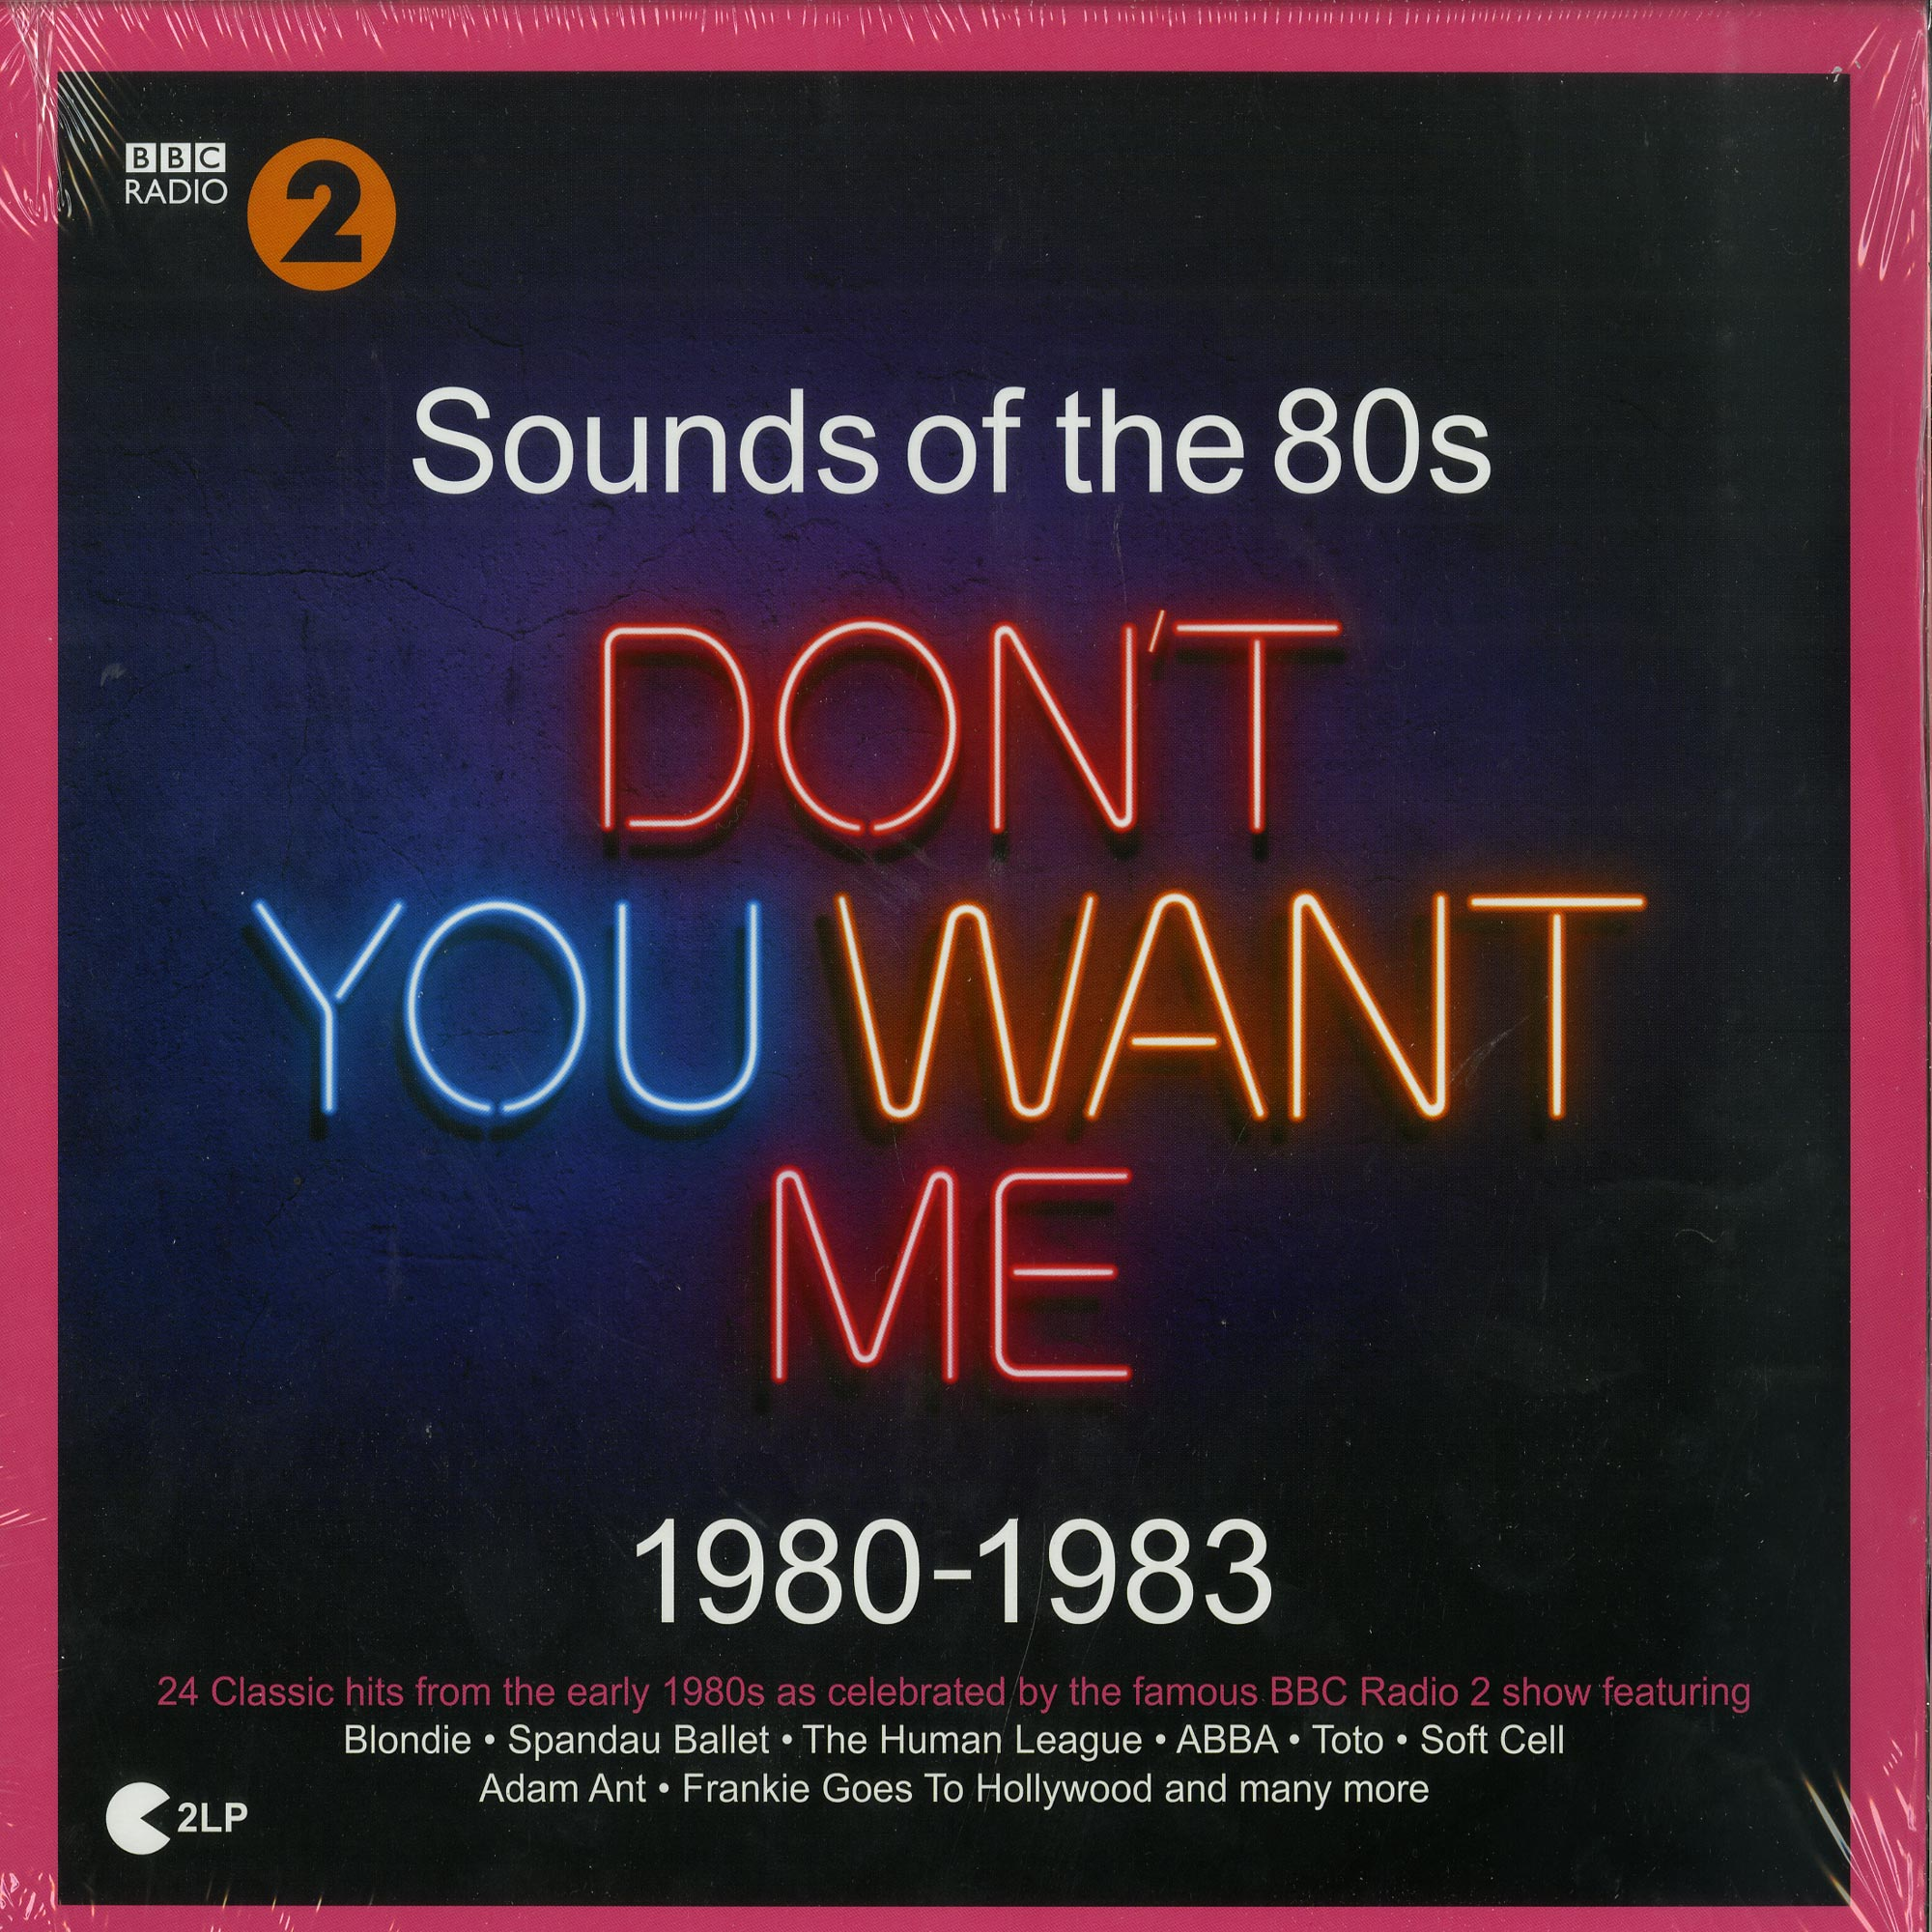 Various Artists - BBC RADIO 2: SOUNDS OF THE 80S - DONT YOU WANT ME